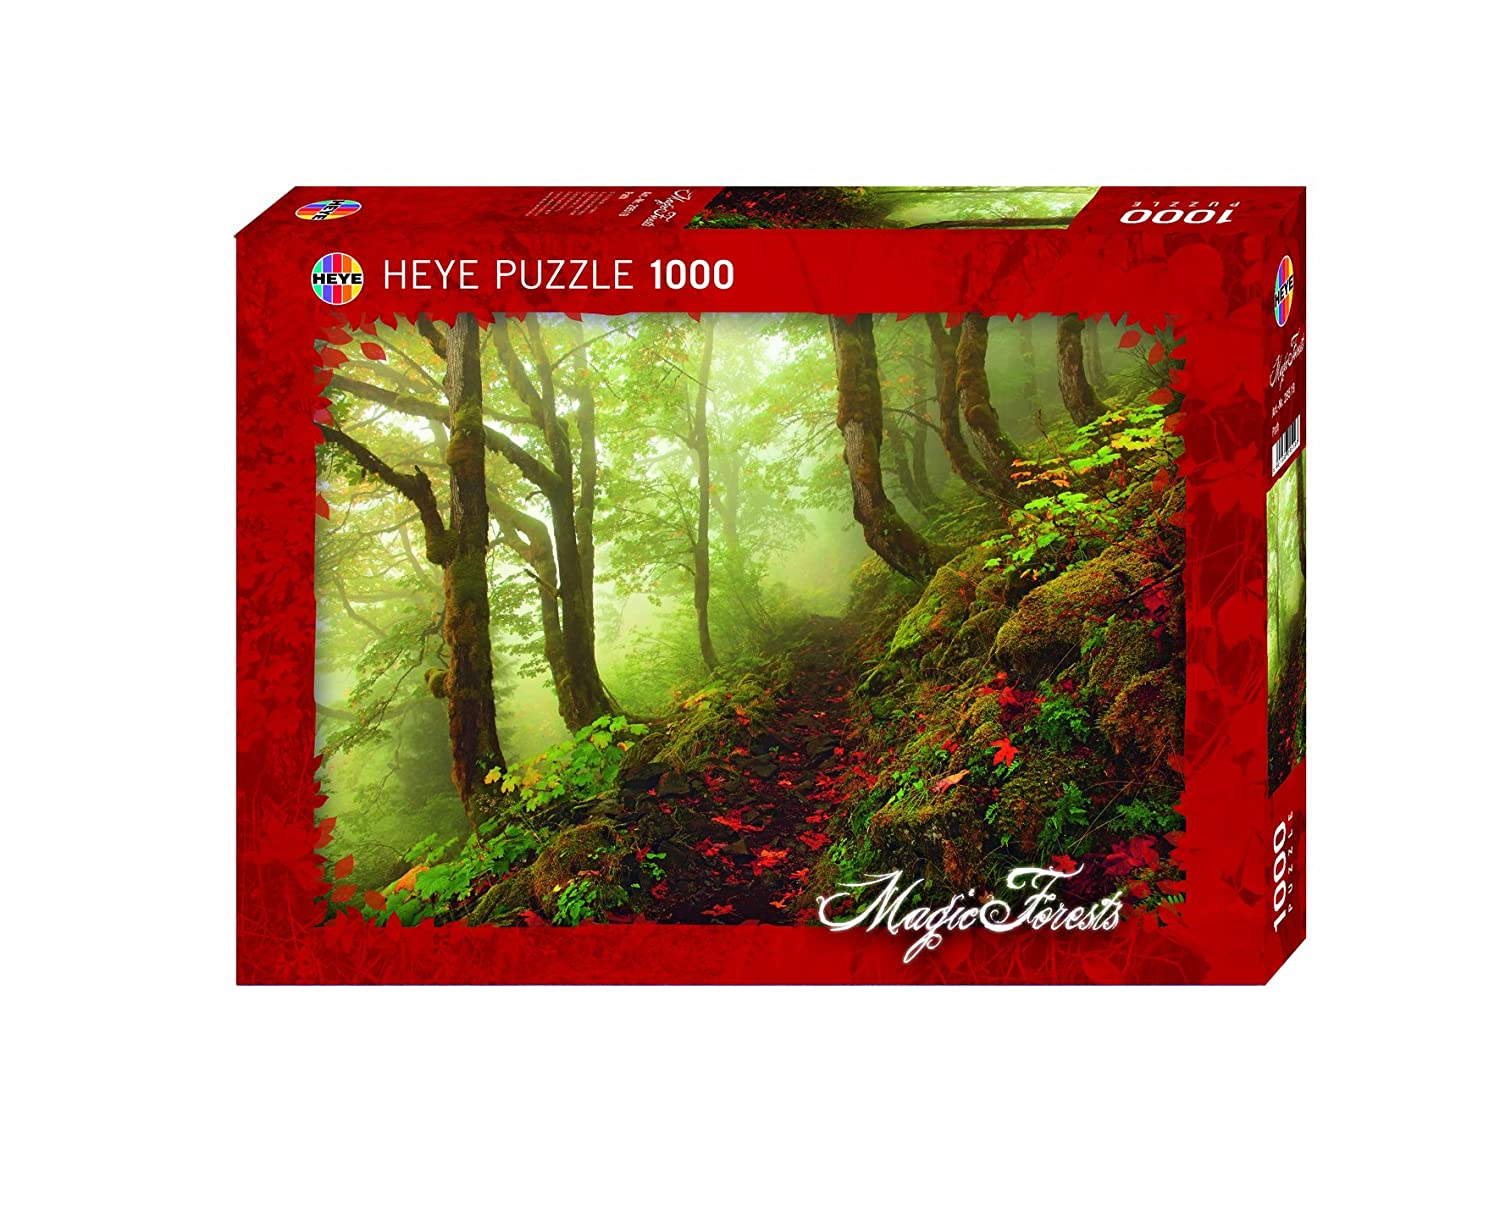 MAGIC FORESTS RHODODENDRON Heye Puzzle 29662-2000 Pcs.